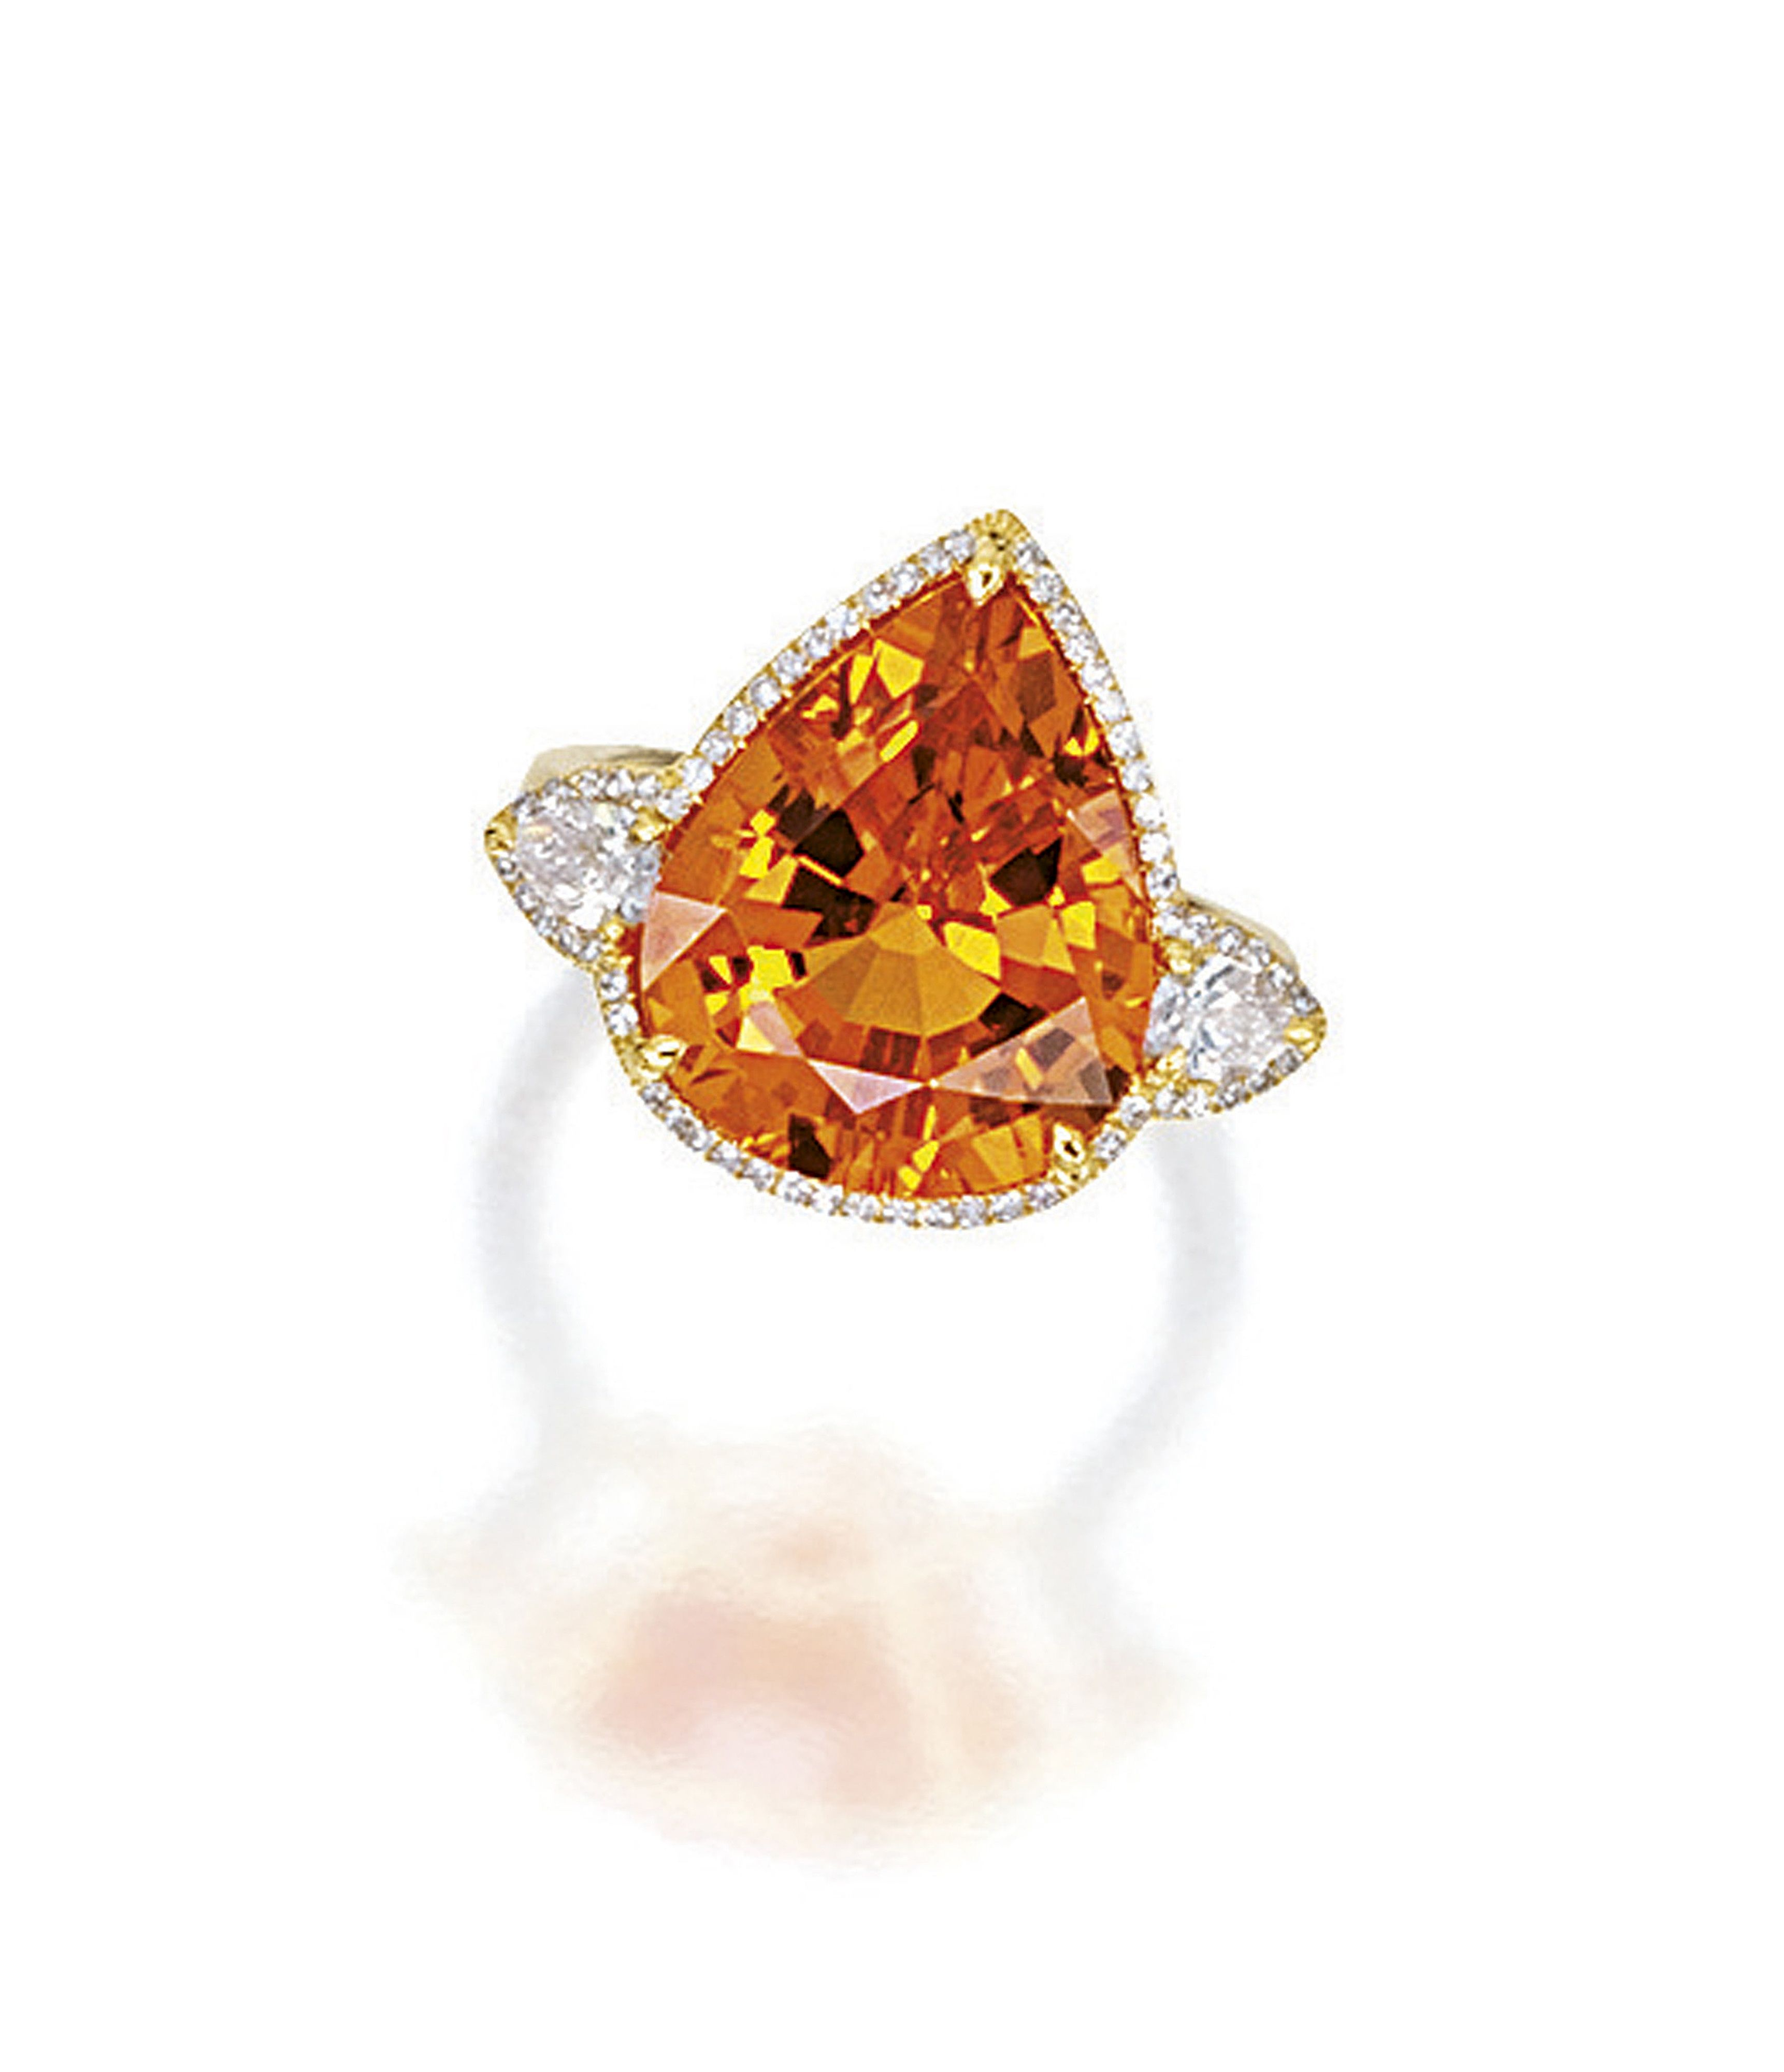 SPESSARTITE GARNET AND DIAMOND RING. Centring on a pear-shaped spessartite garnet weighing 10.26 carats, flanked on each side by a pear-shaped diamond, surrounded by brilliant-cut diamonds, mounted in platinum and 18 karat yellow gold. Sotheby's.